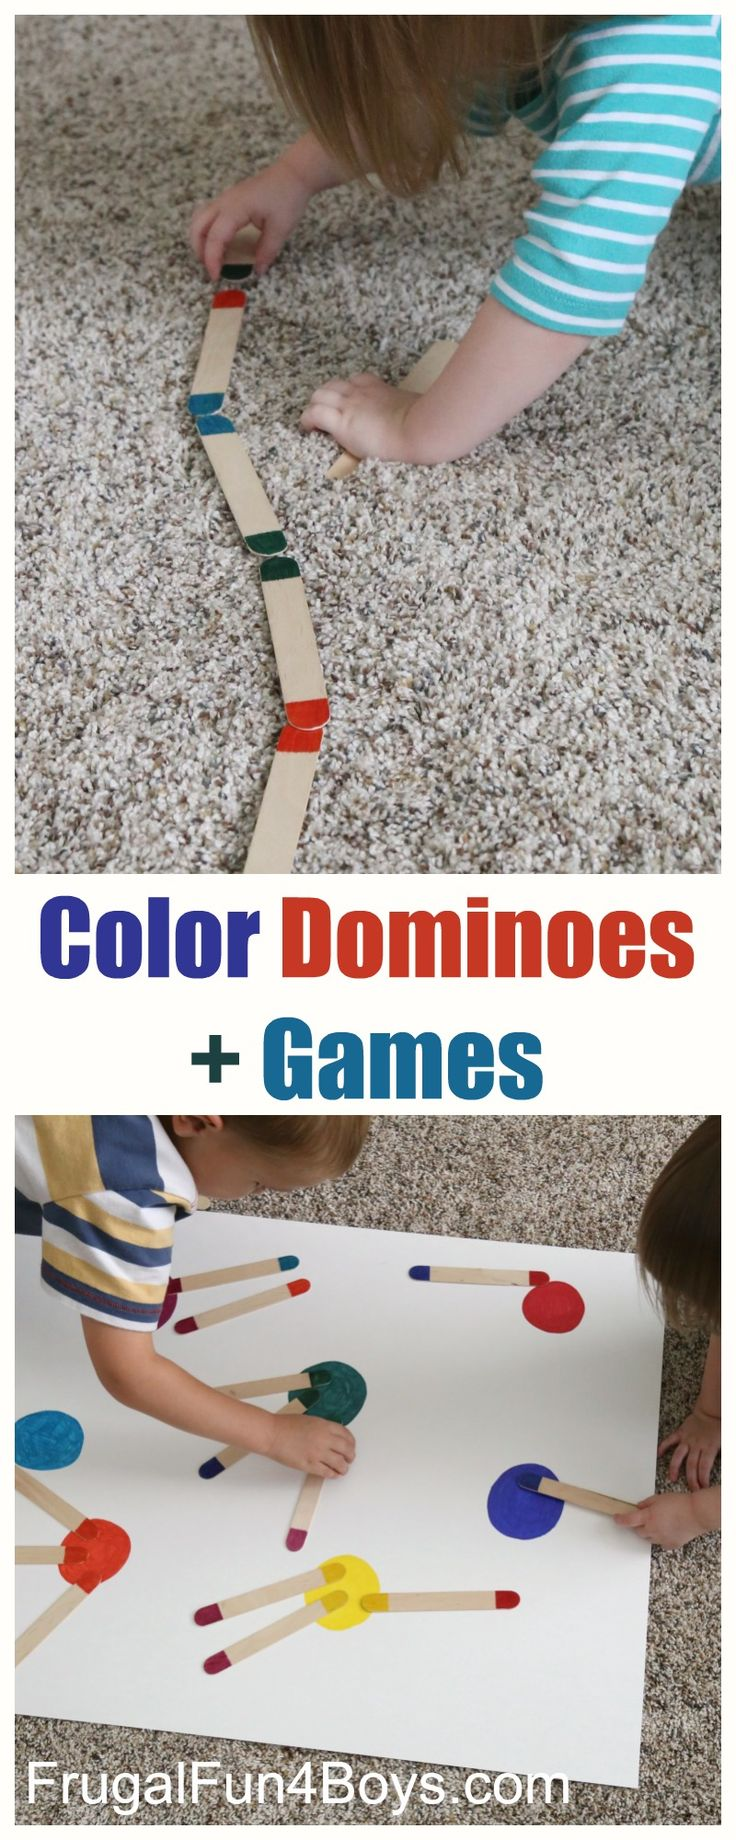 Craft Stick Color Dominos plus games to play with them.   Perfect busy bag idea for preschoolers!